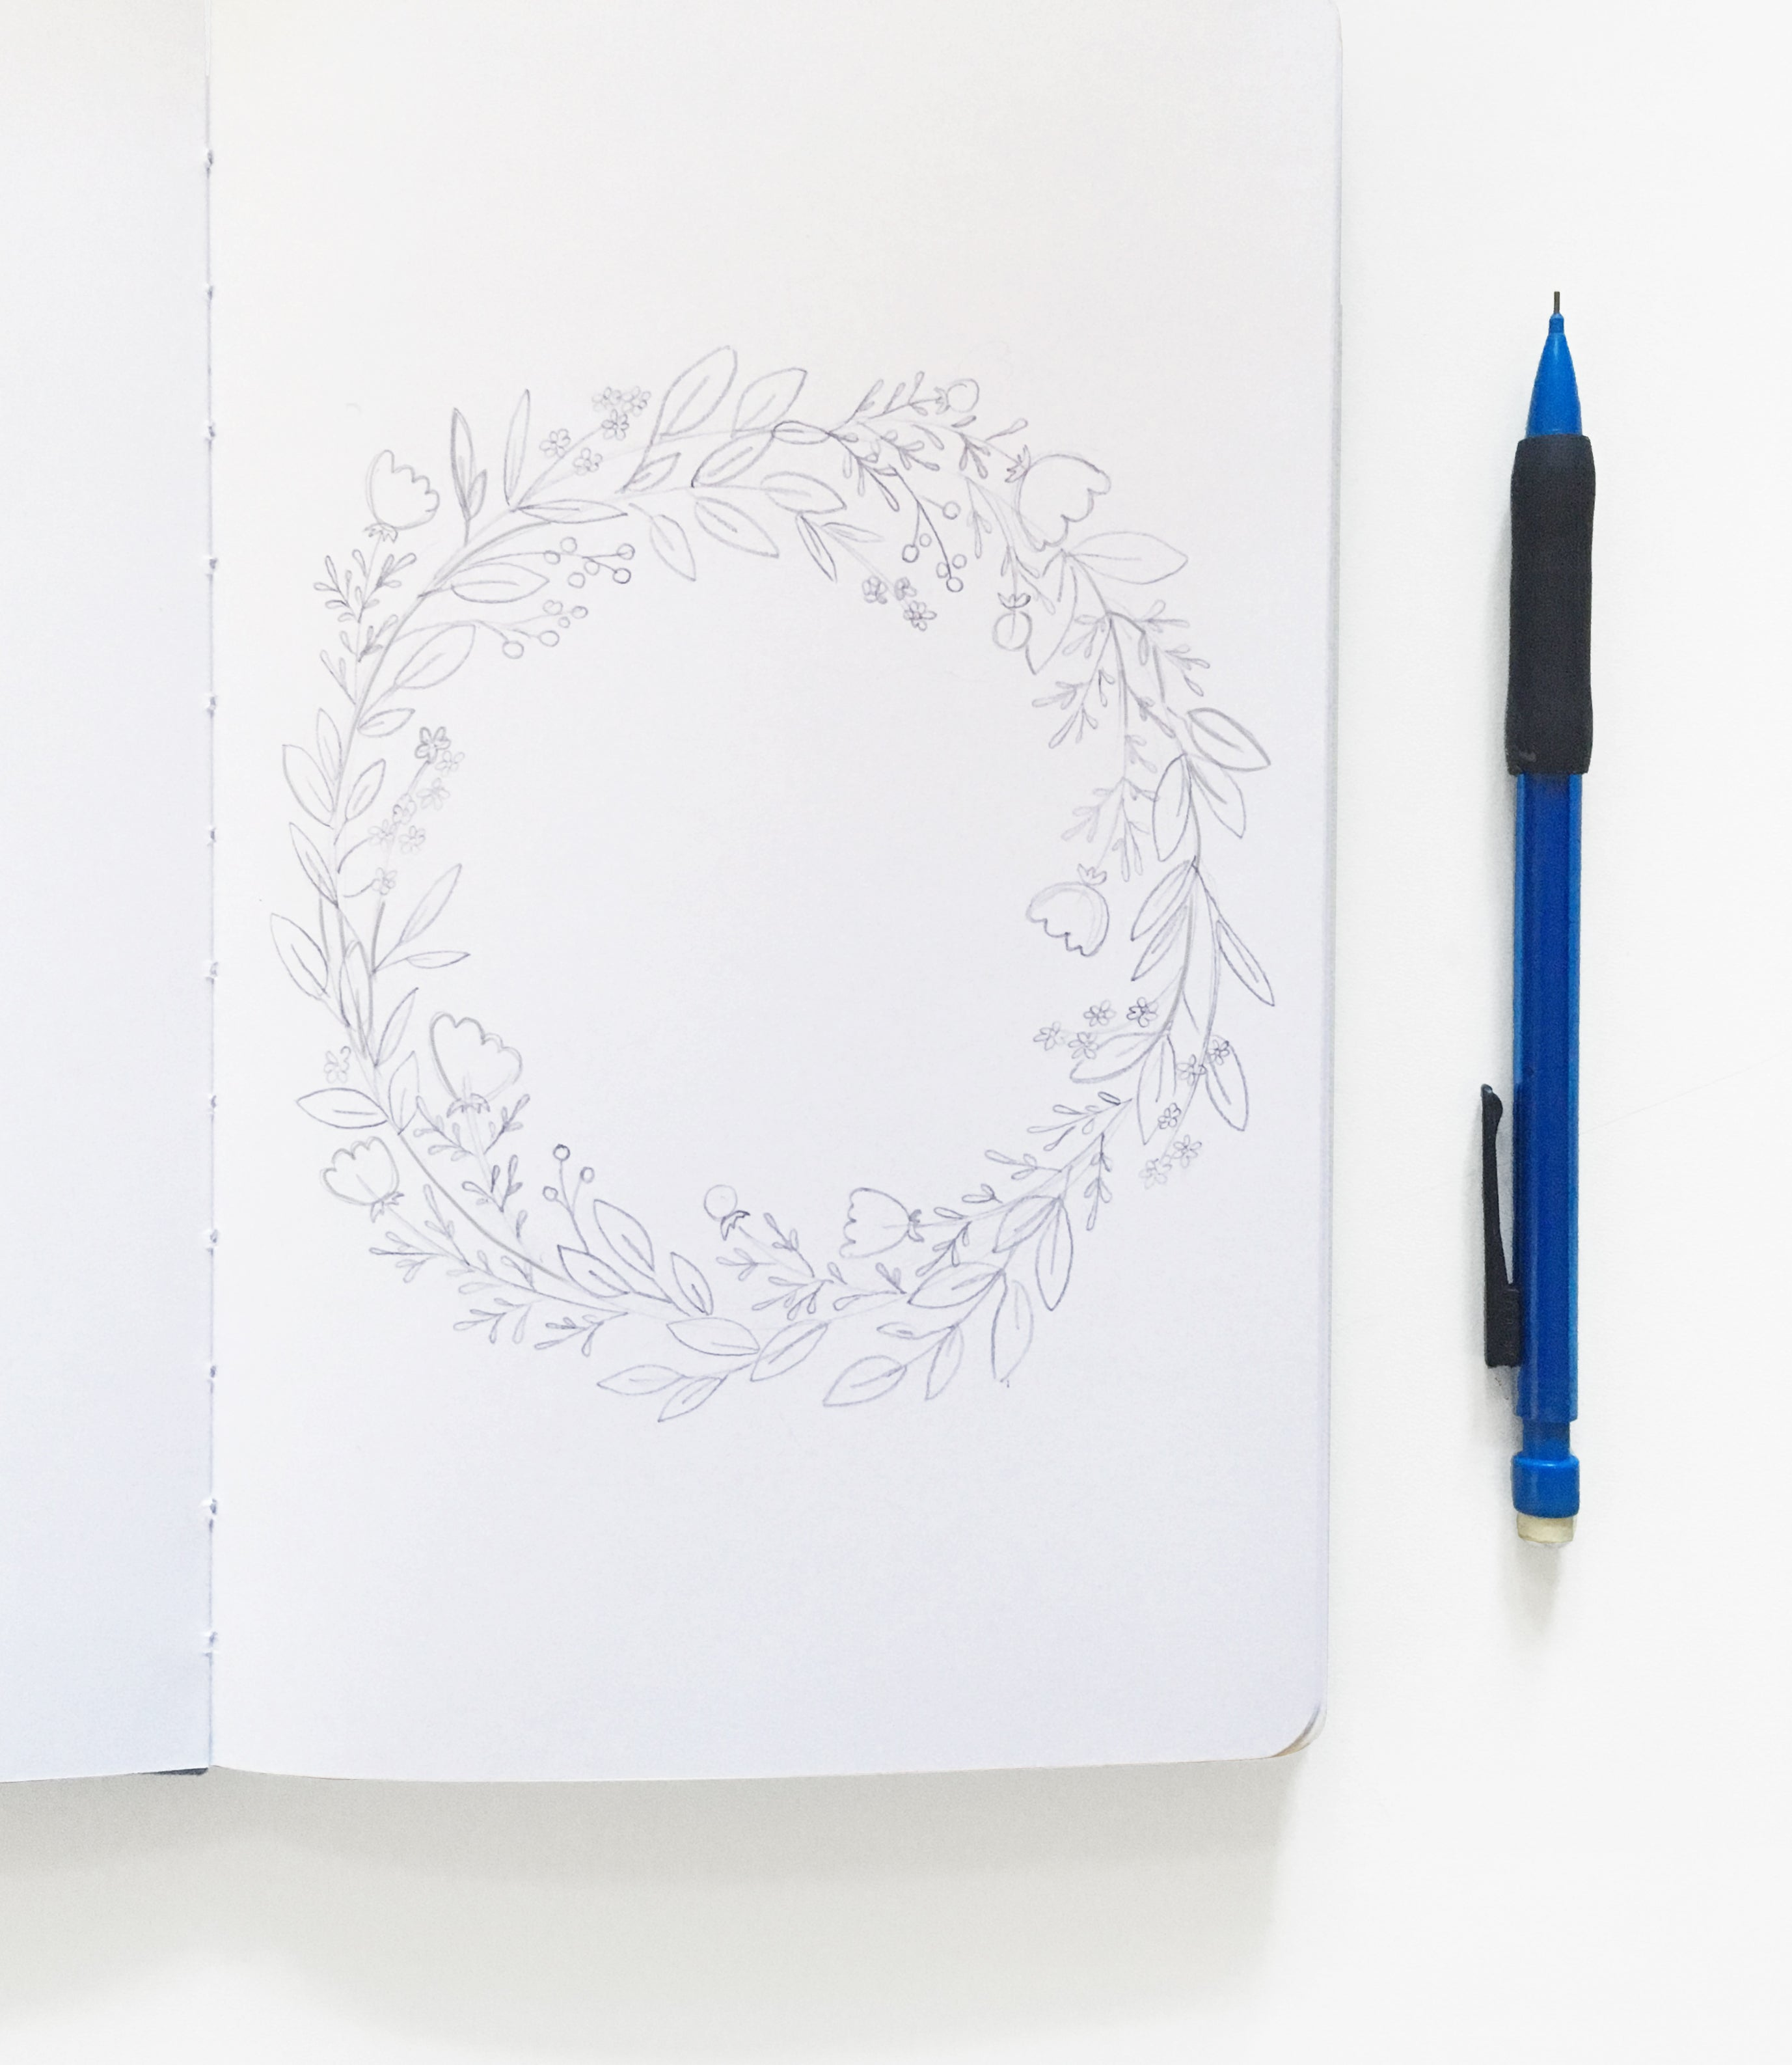 How to paint a floral wreath archer and olive feel free to draw extra branches or flowers in areas where your wreath looks thin berries make a great filler if you need an additional element izmirmasajfo